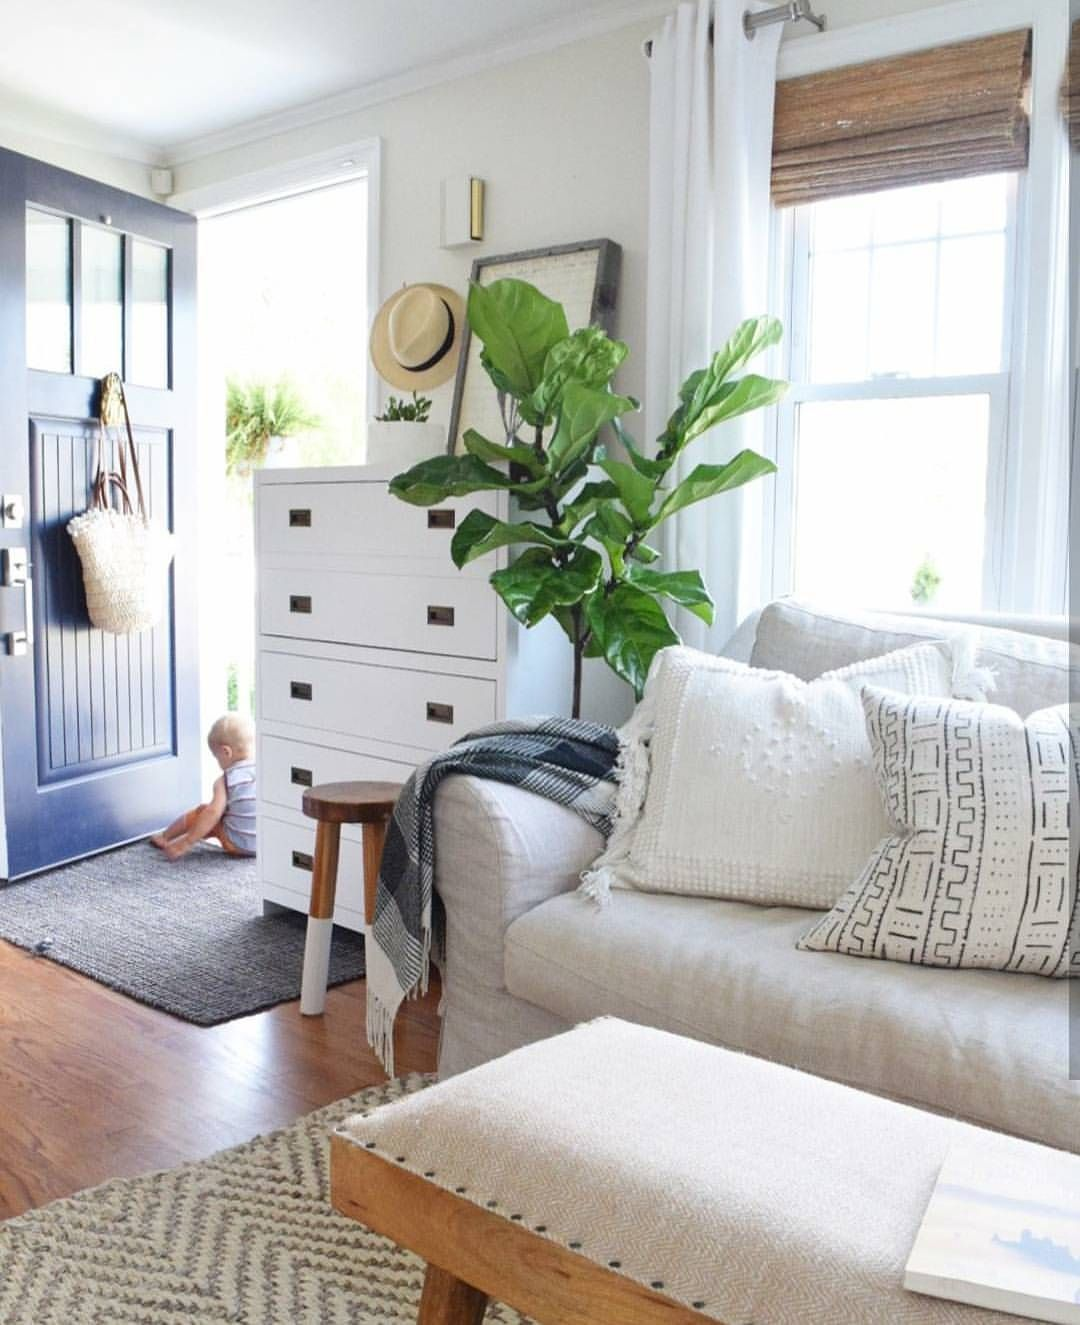 Living Room Decorating And Designs By Tina Barclay: Pin By Tina Midura On Living Room